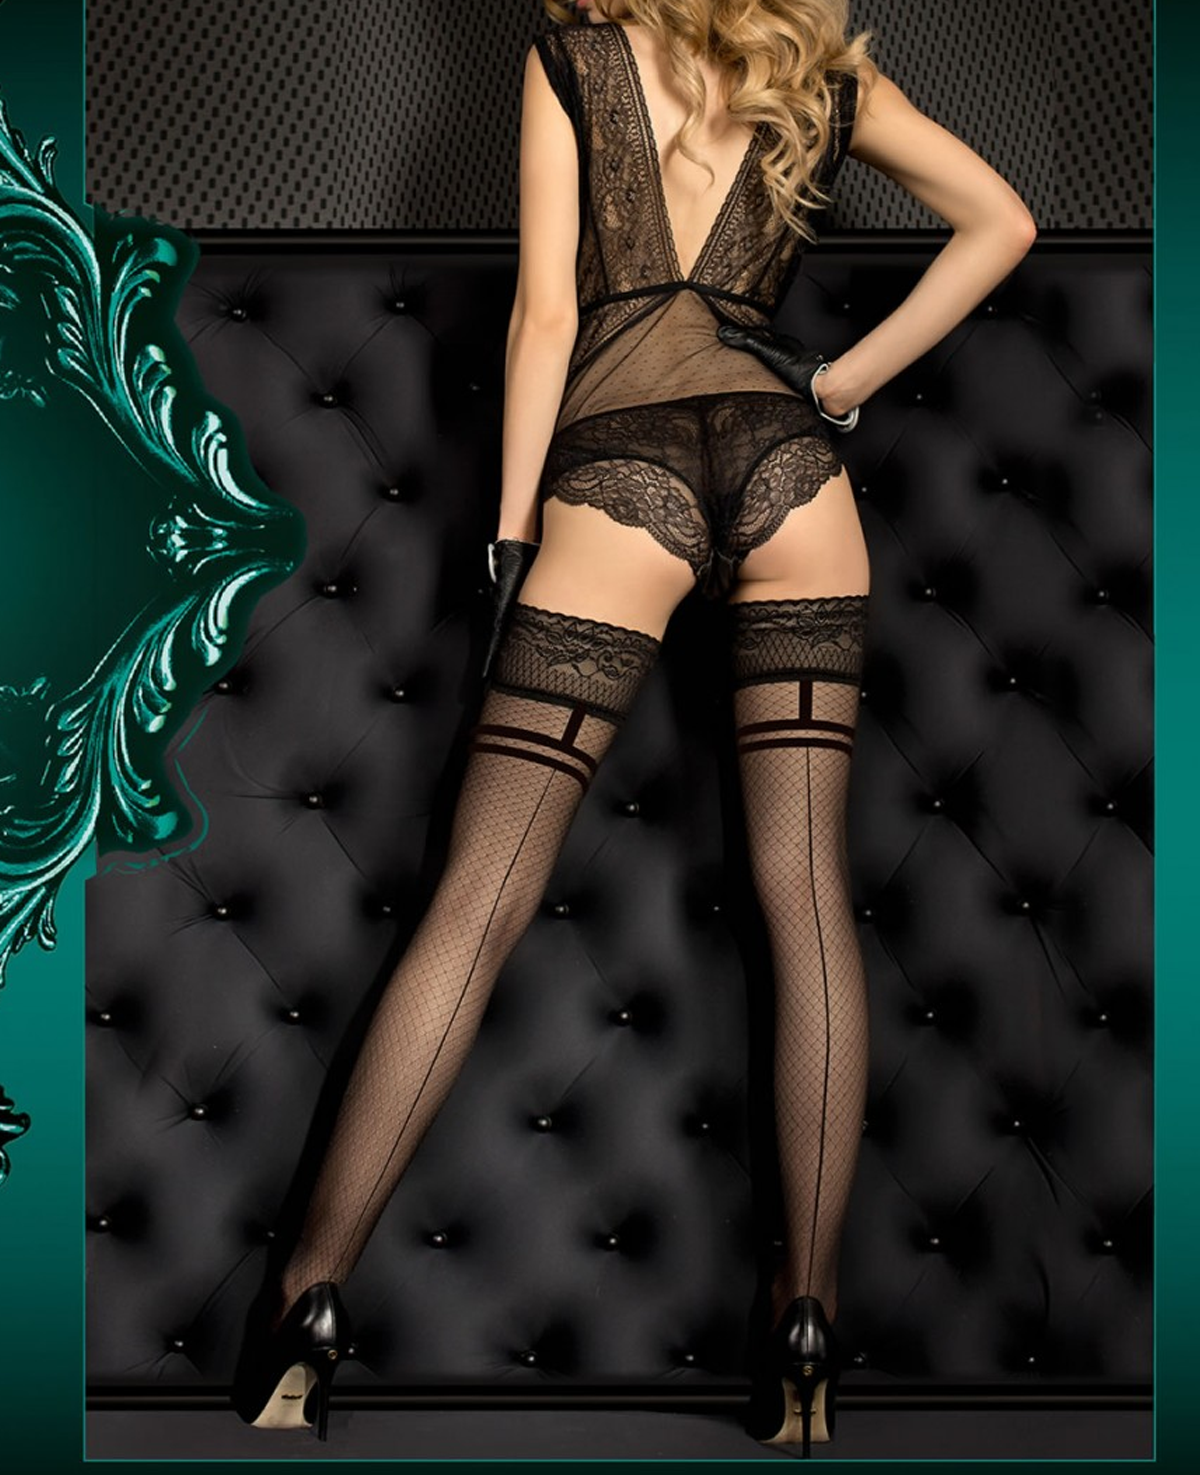 69db954b8 Ballerina Criss Cross Seamed Lace Top Seamed Hold Ups at Stockings ...